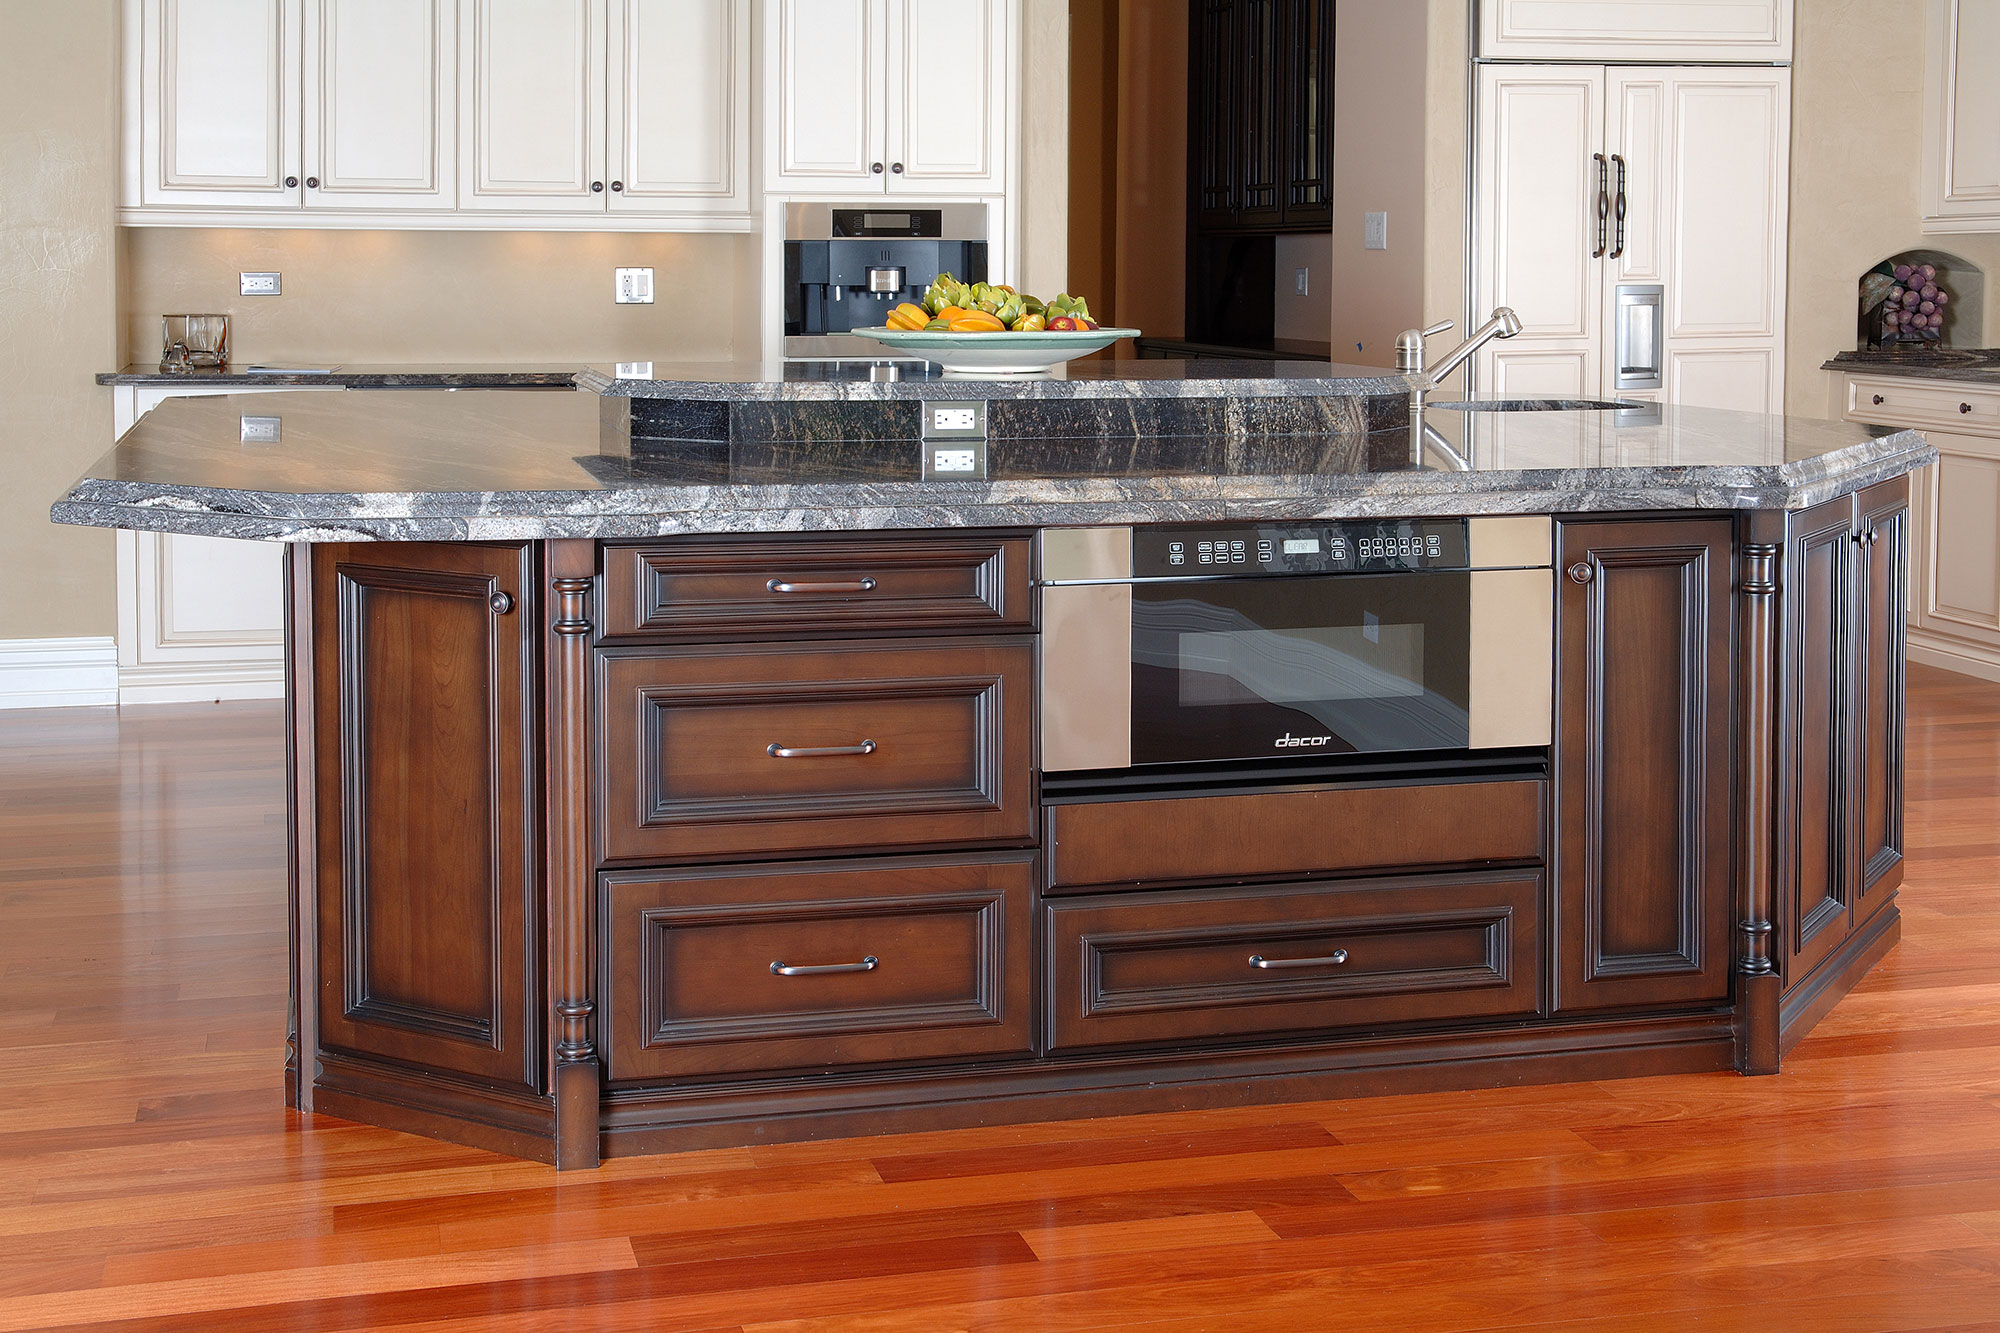 kitchen cabinets gallery gallery kitchen and bathroom cabinets kitchen cabinets 2998